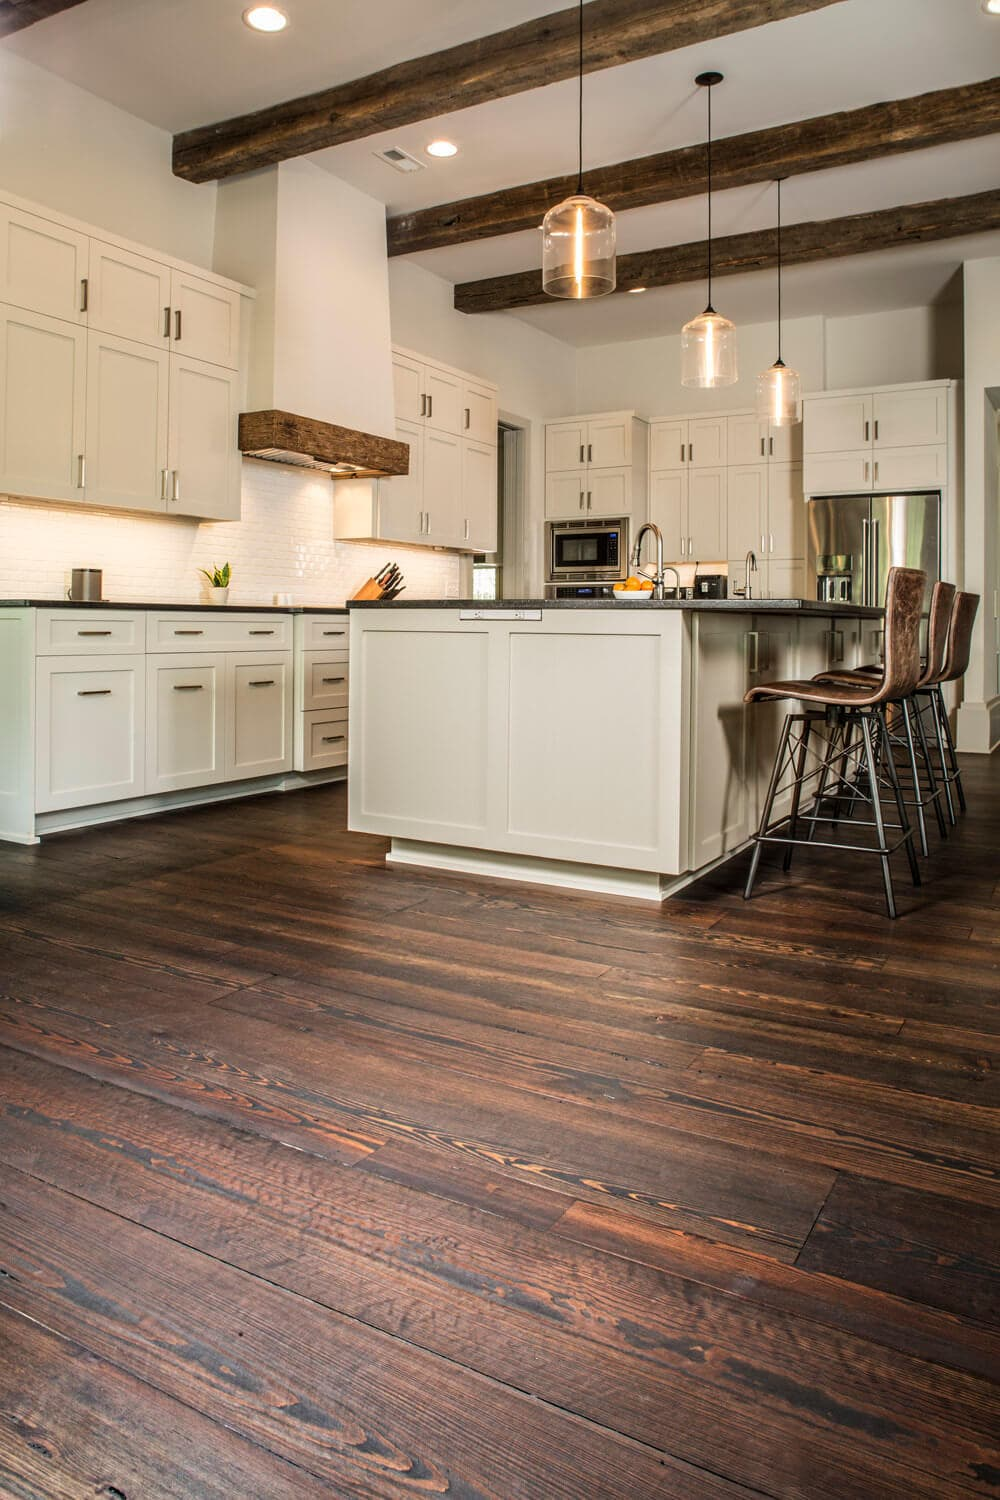 wide plank engineered floor and ceiling beams in a kitchen